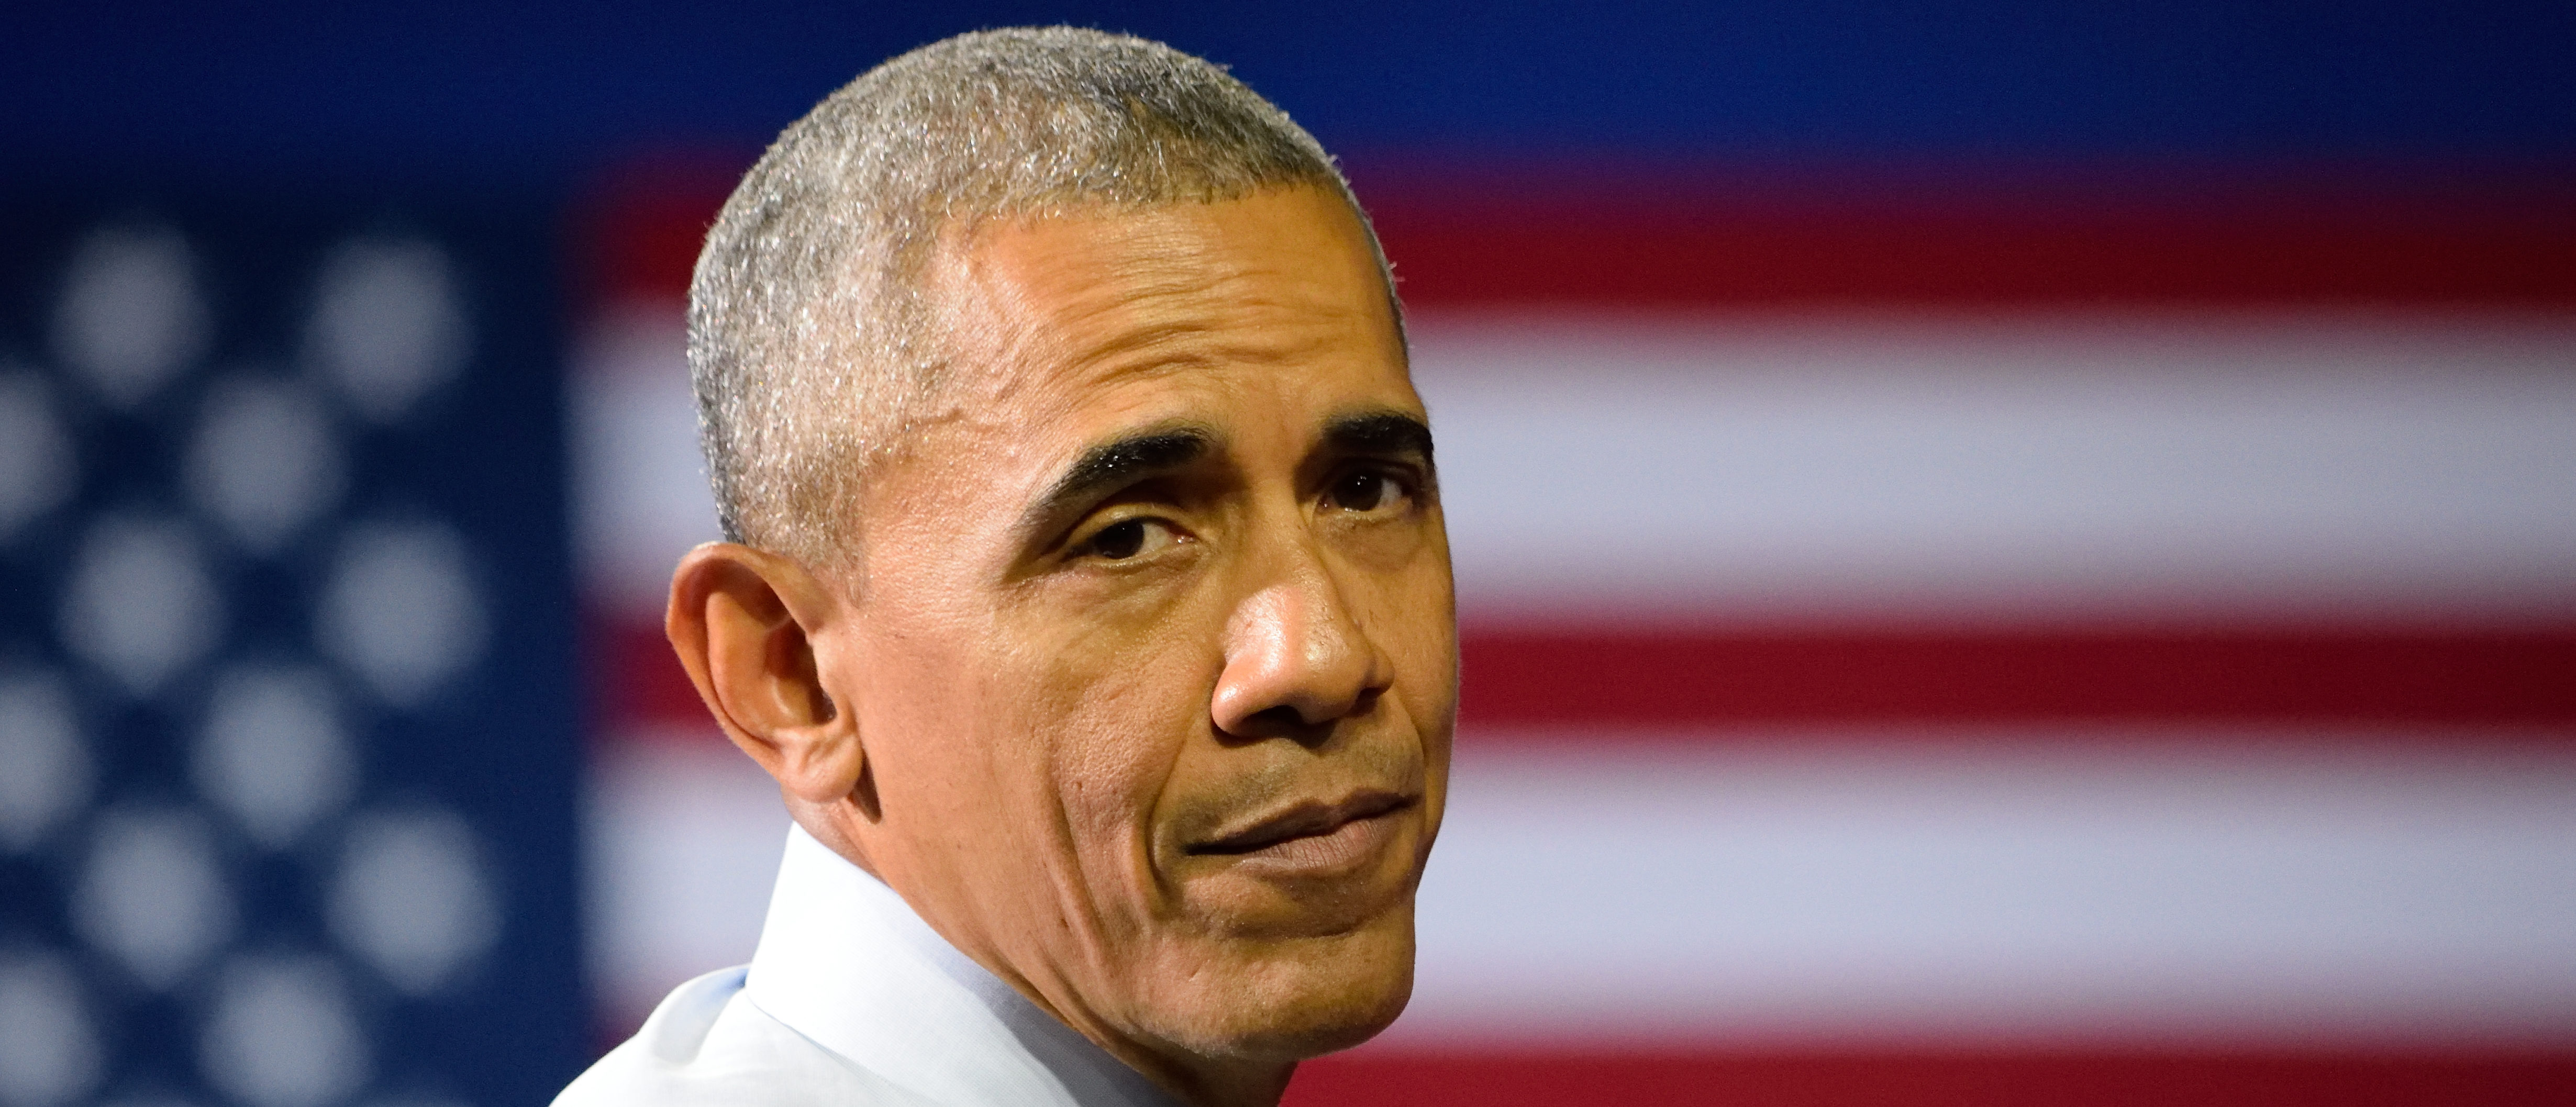 Obama Deported Nearly 2 Million In First Three Years Of His Presidency – Trump Has Deported Fewer Than 800,000